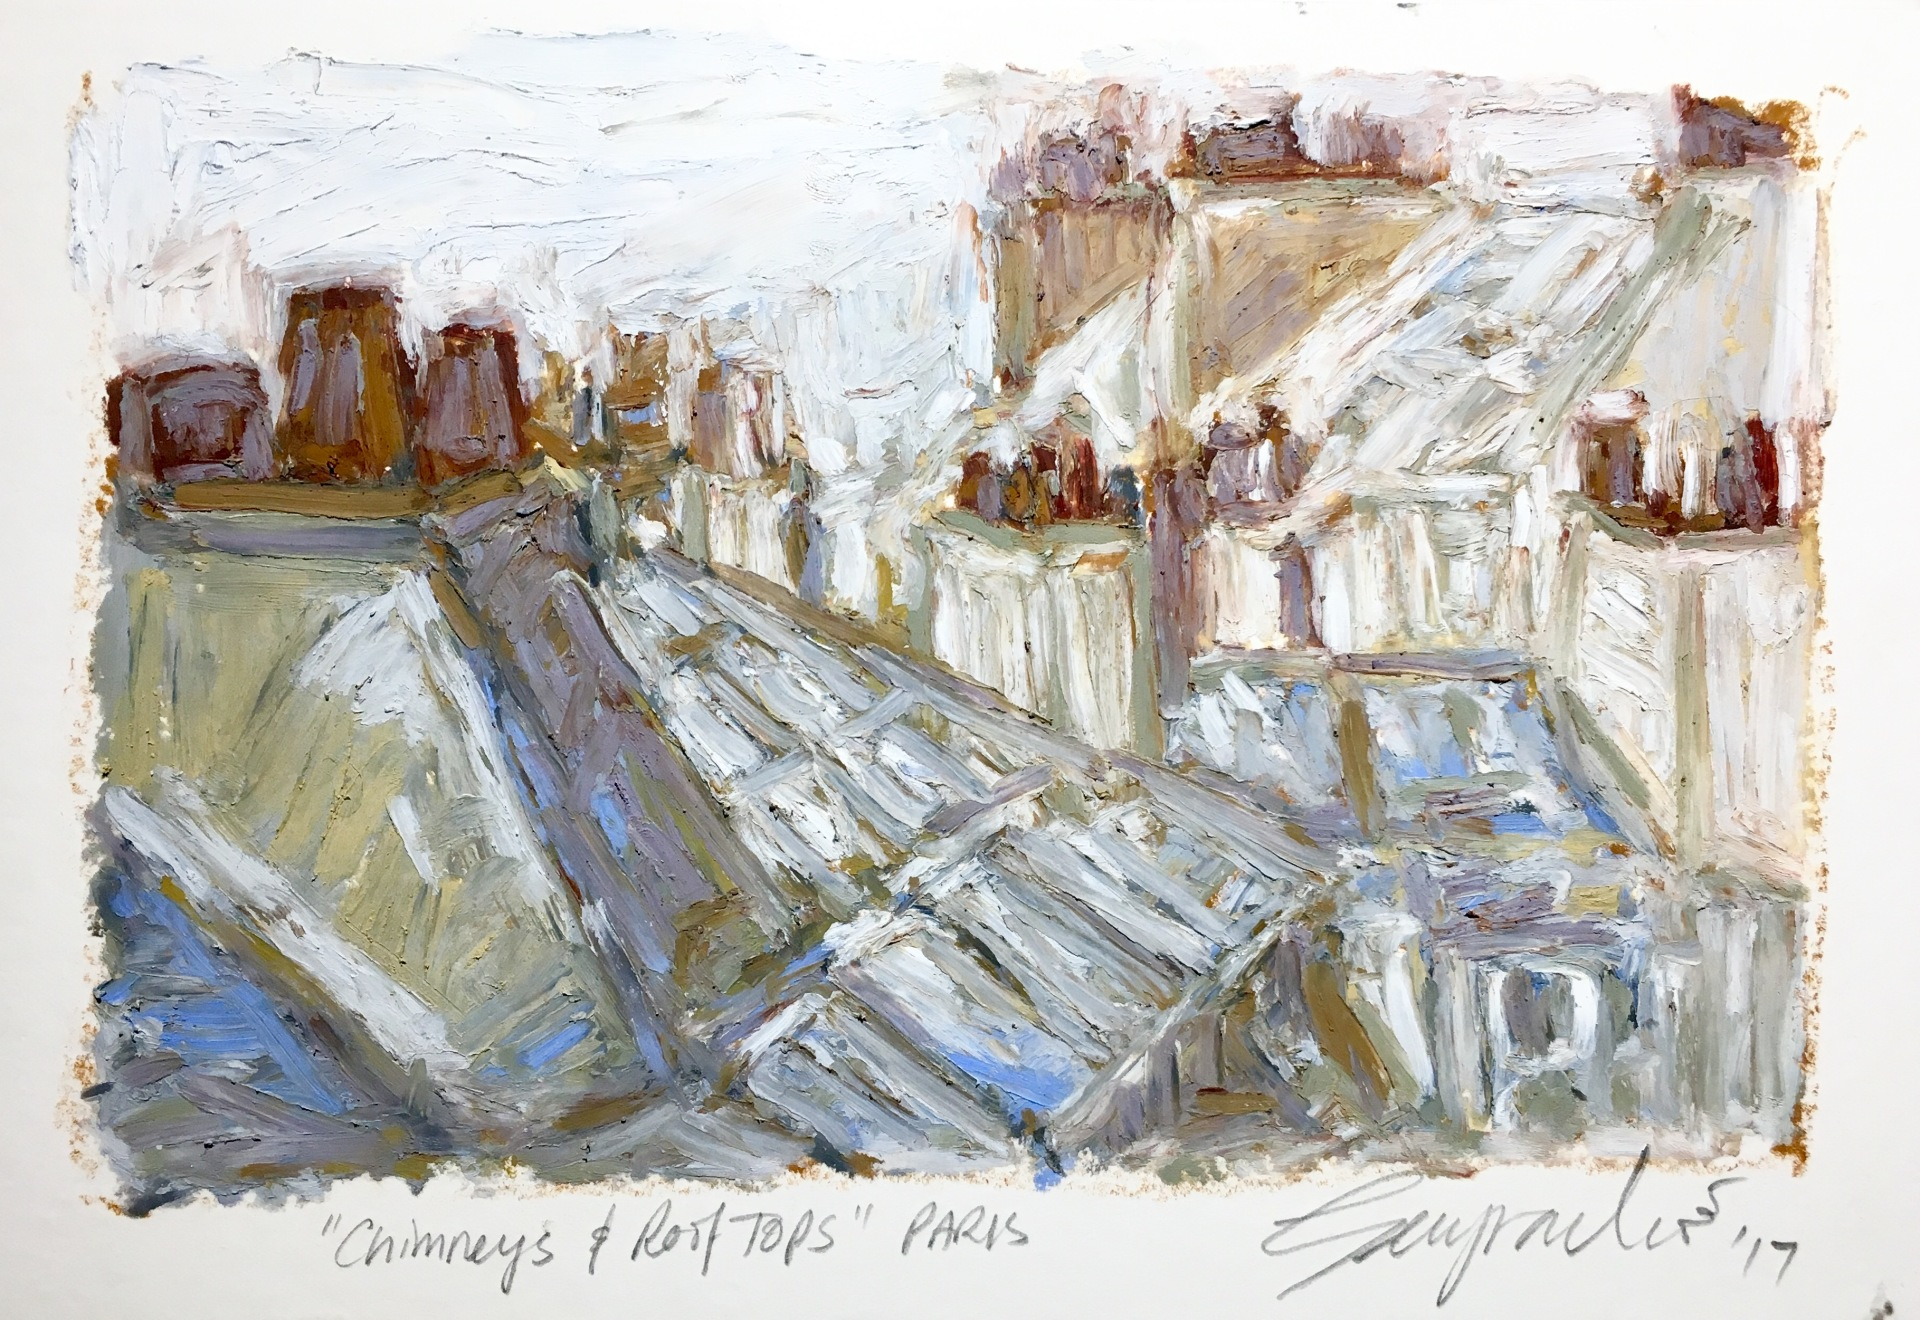 Chimneys & Rooftops Paris (SOLD)